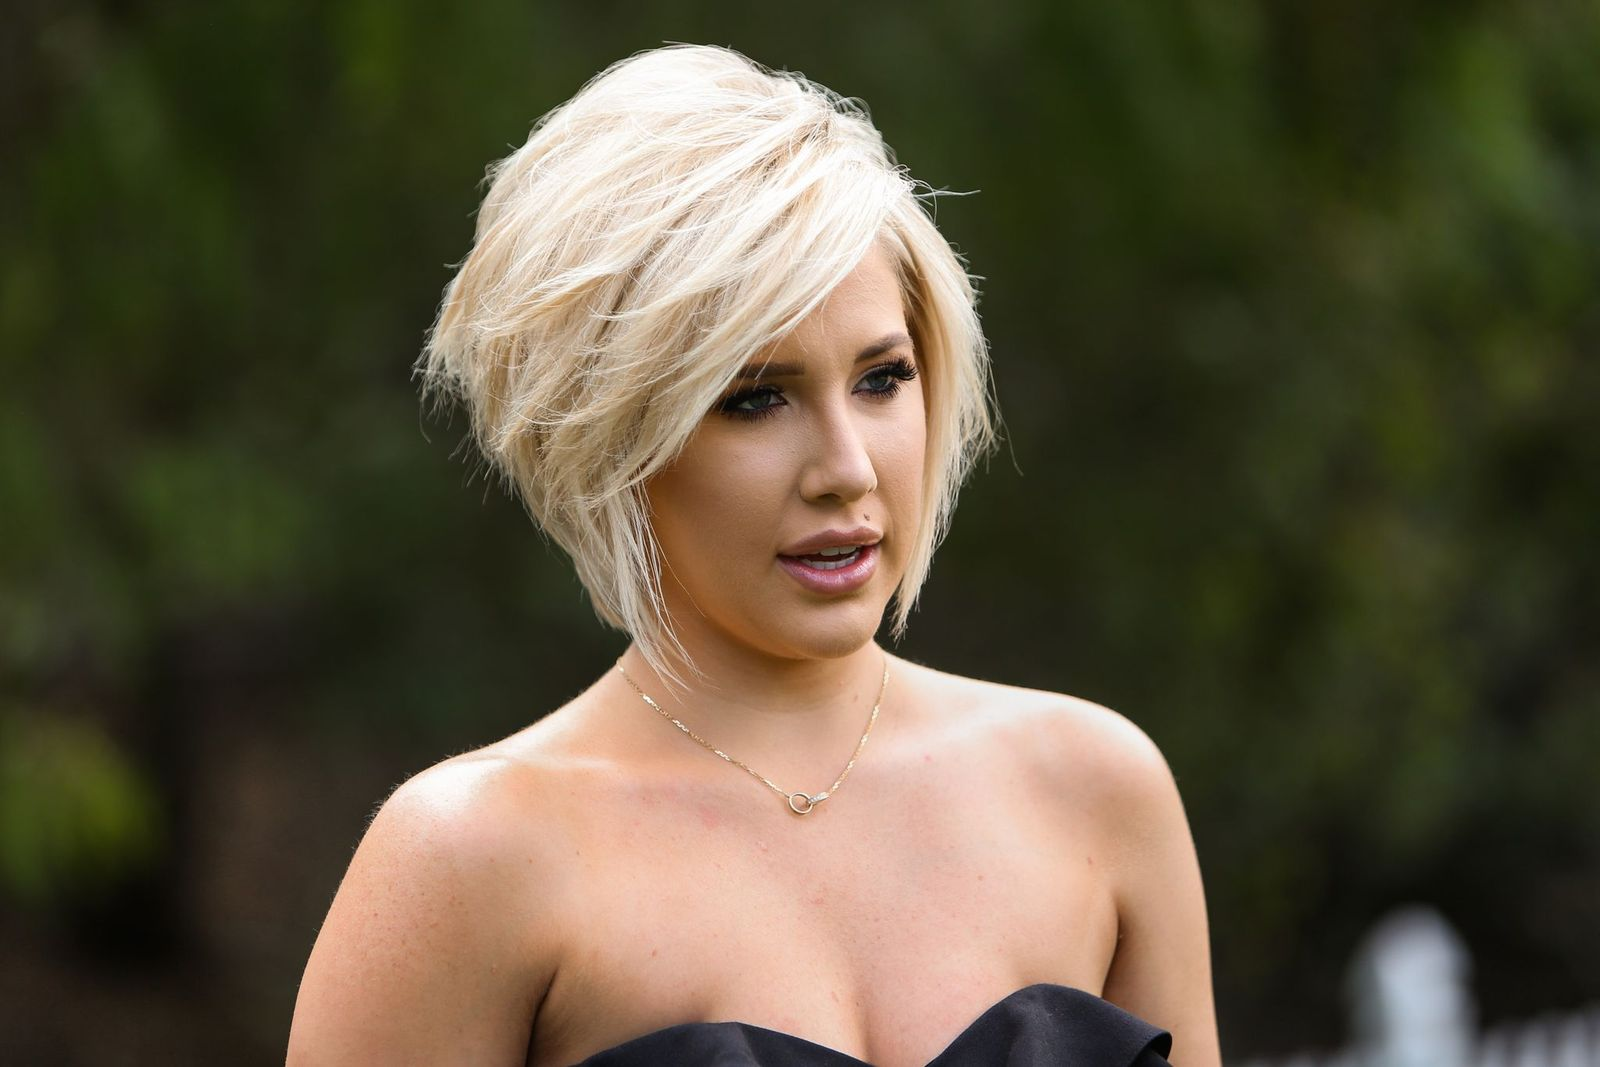 Savannah Chrisley  at Universal Studios Hollywood on March 27, 2019 in Universal City, California | Photo: Getty Images